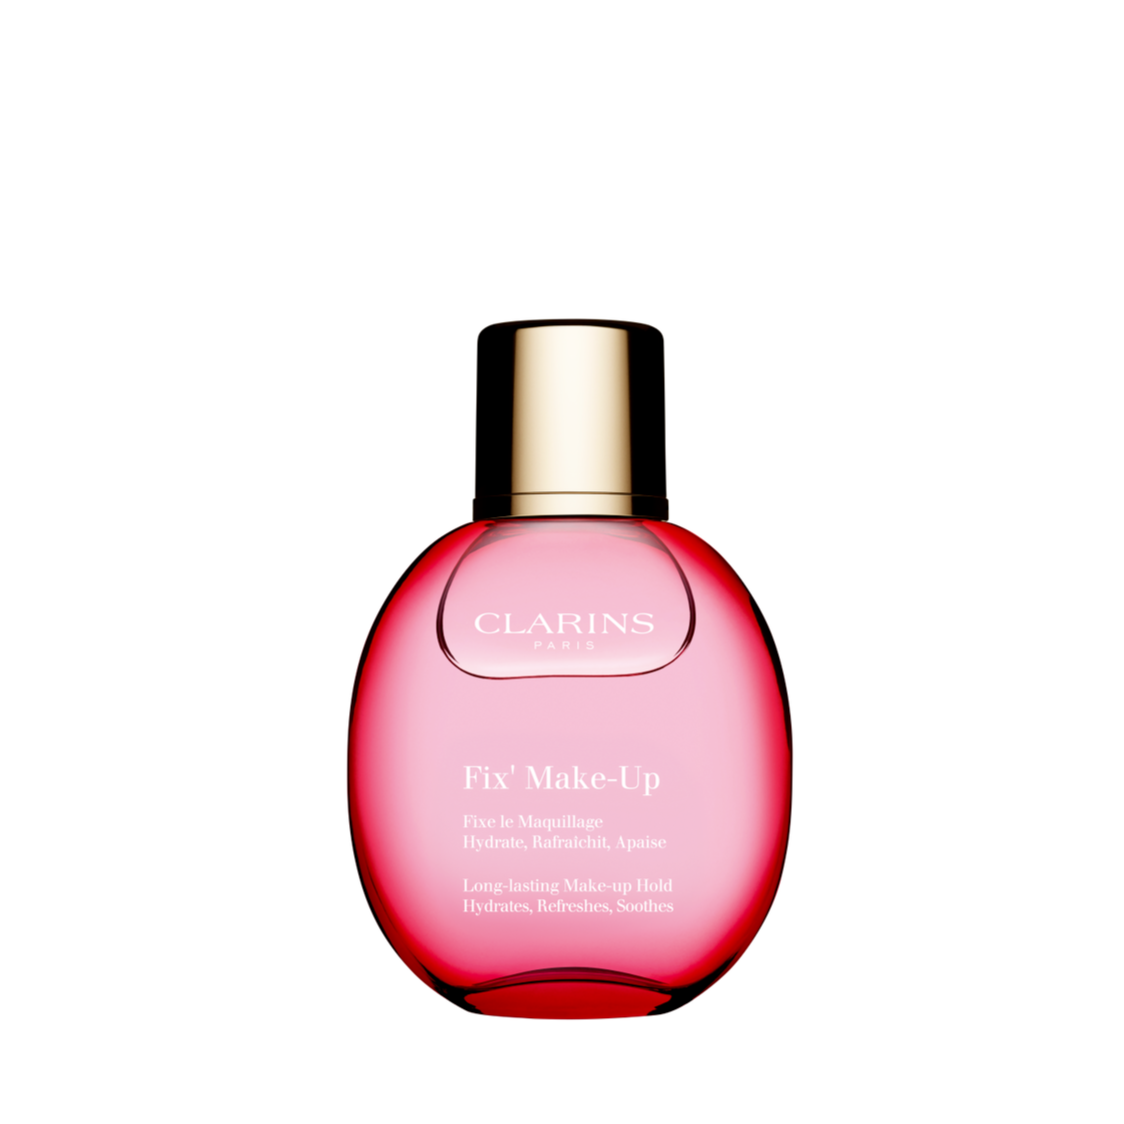 Clarins Fix Make-up 50ml